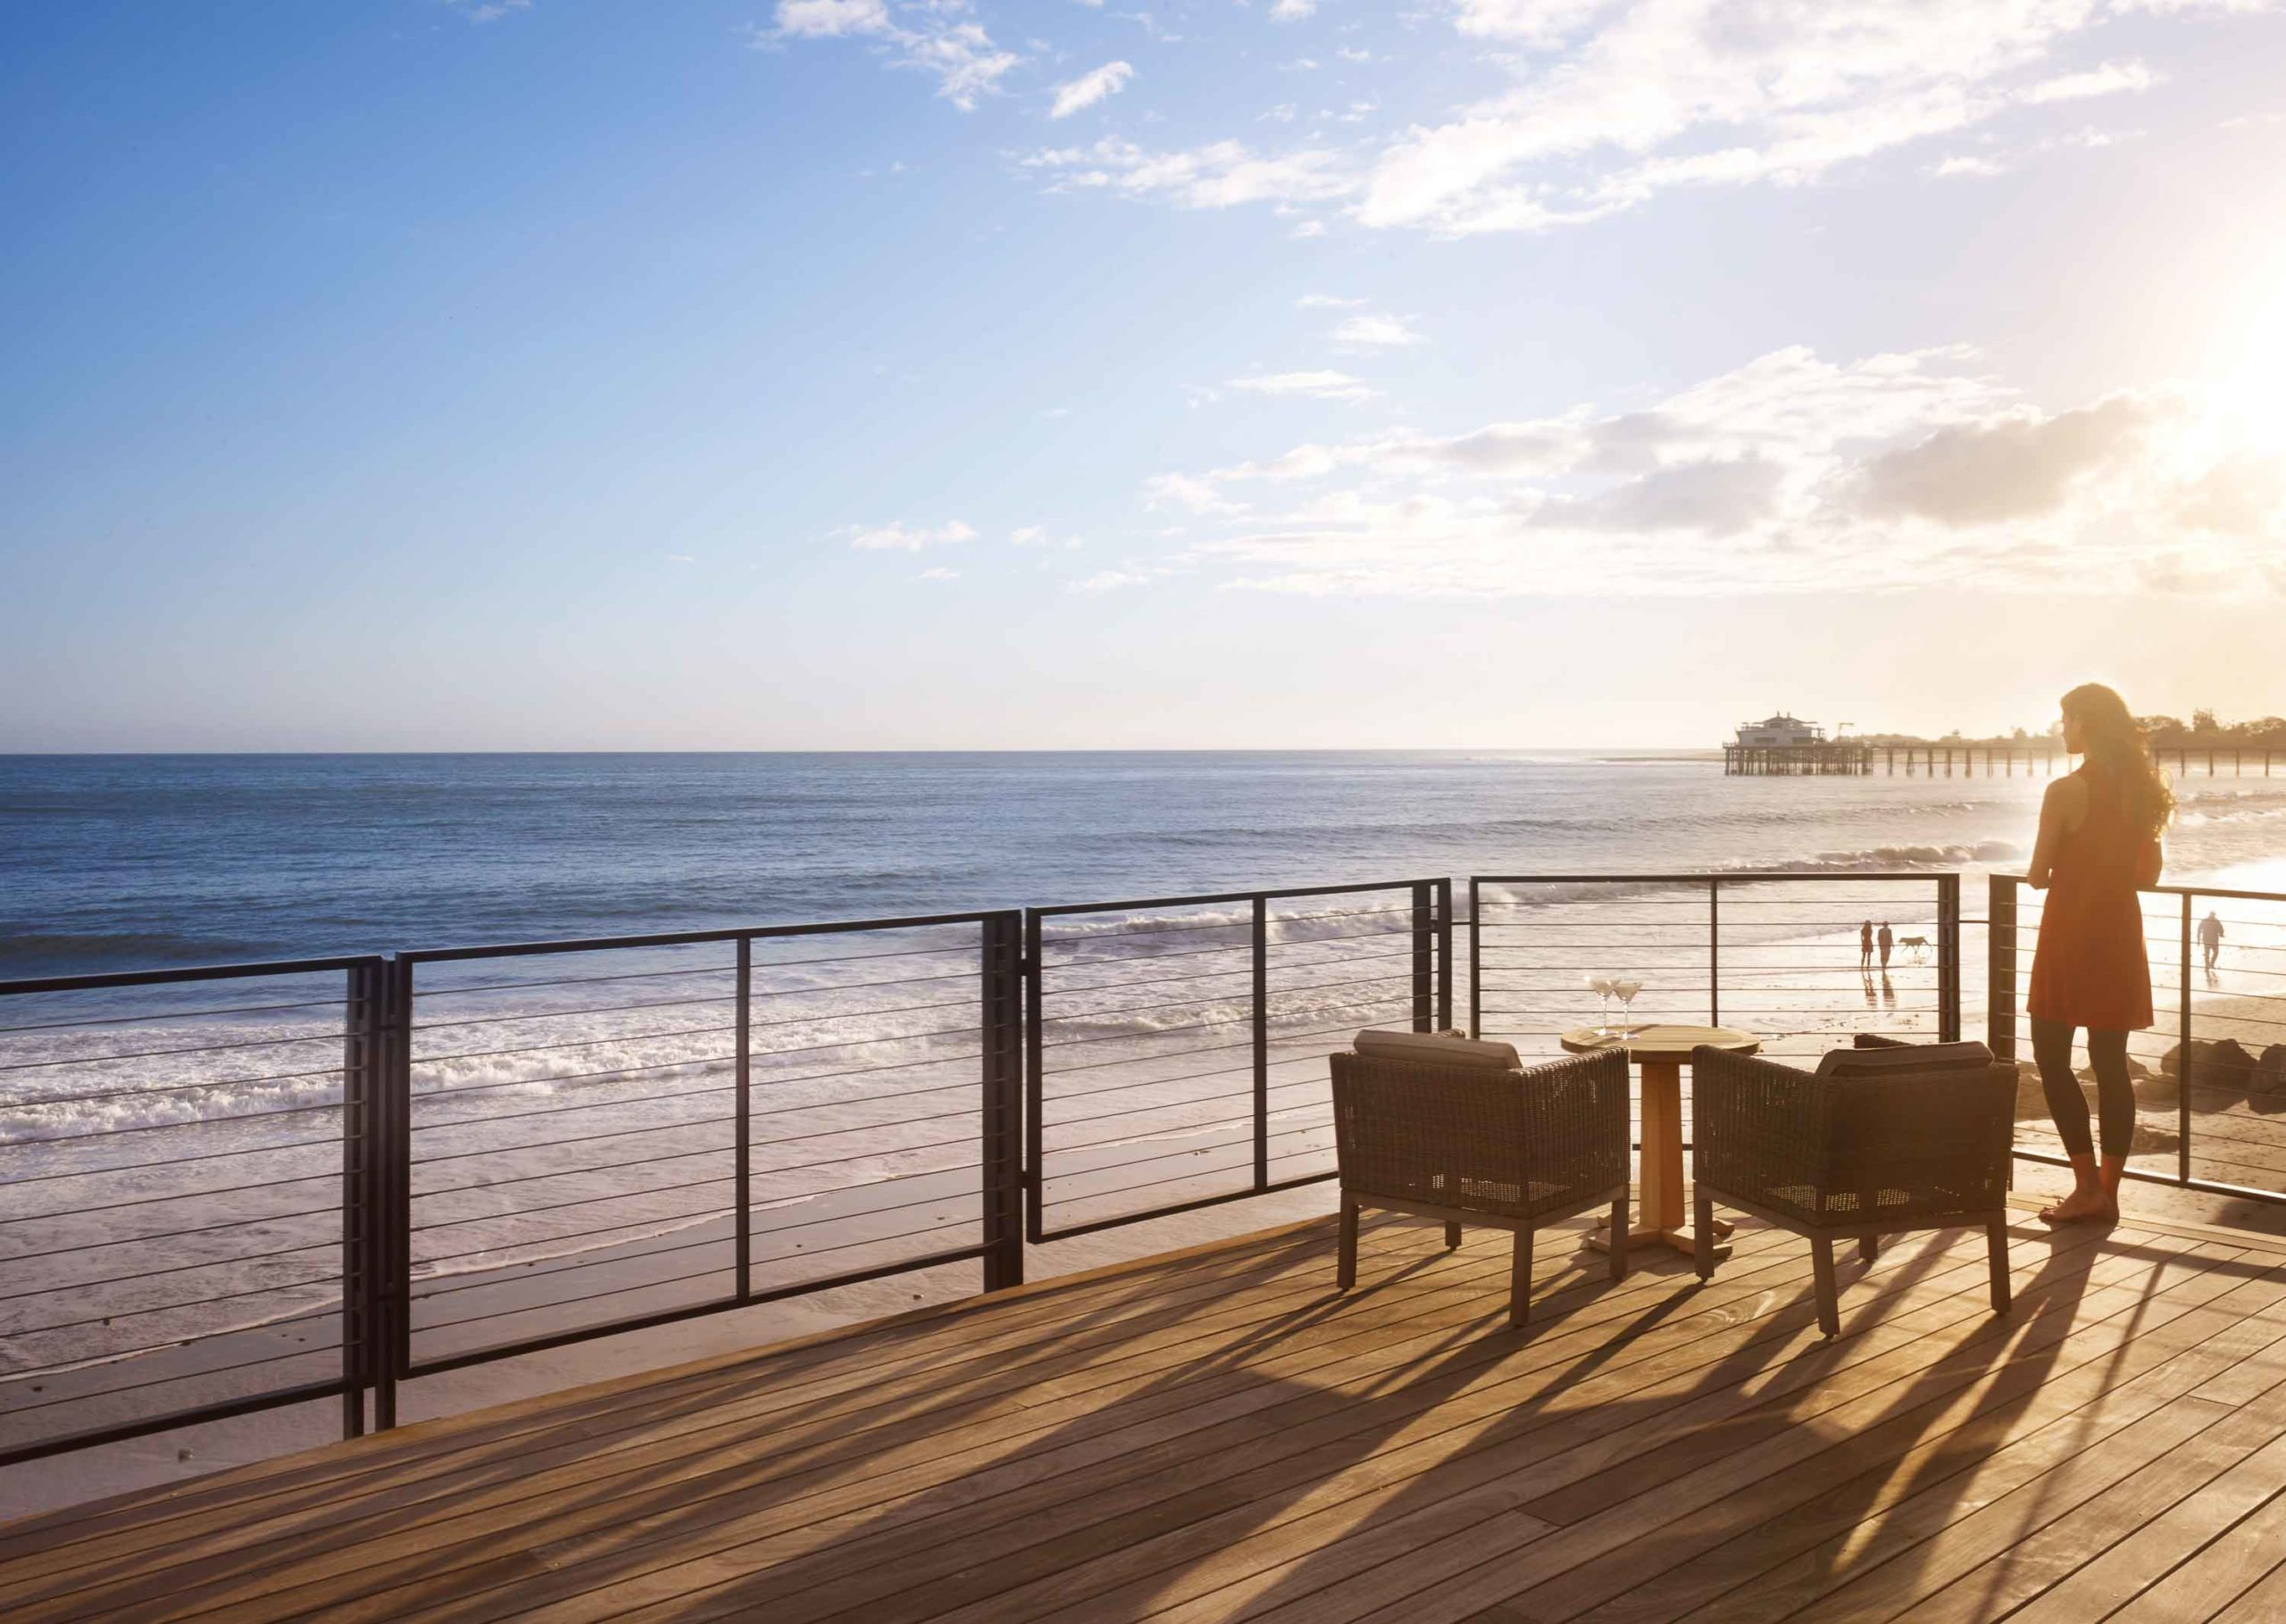 A woman standing on a balcony looking out to Carbon Beach from Nobu Ryokan Malibu